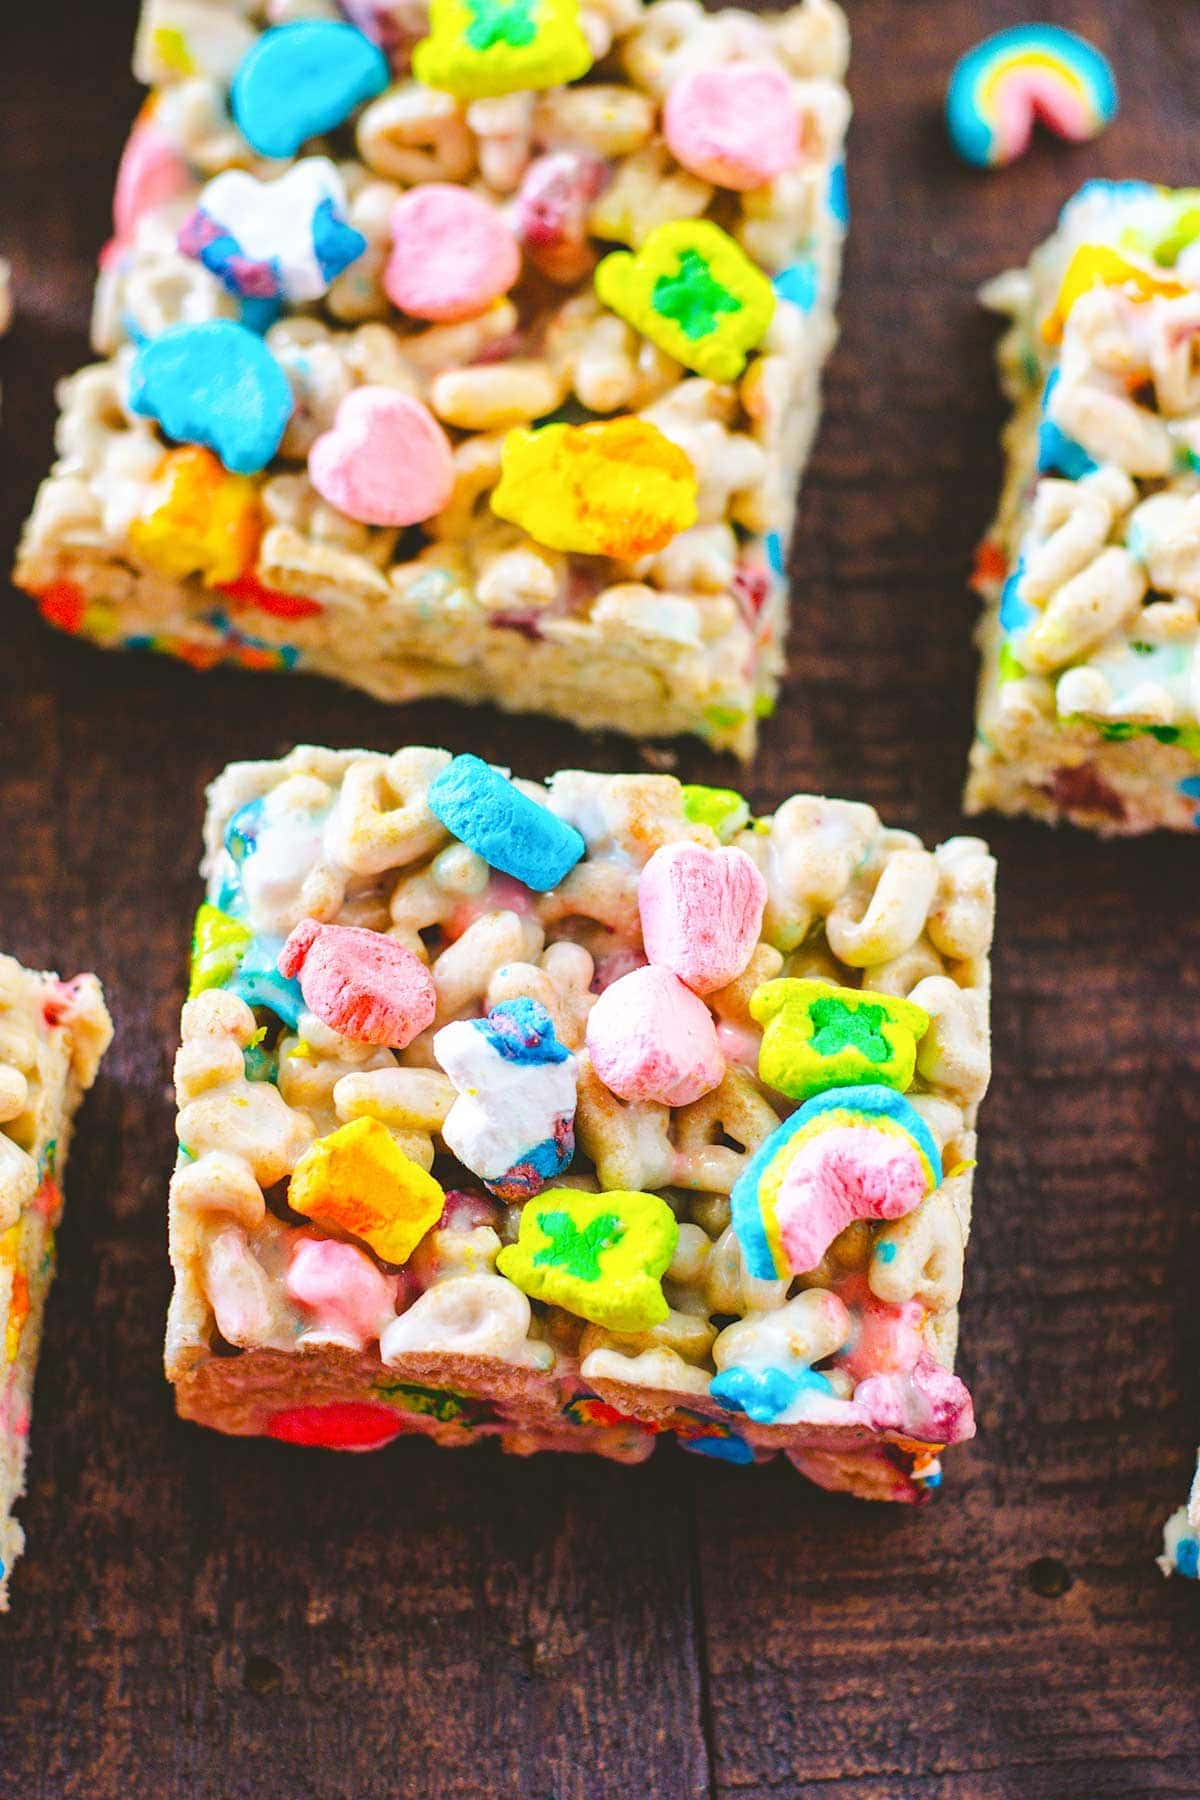 Sliced Lucky Charms treats on a wooden tray.